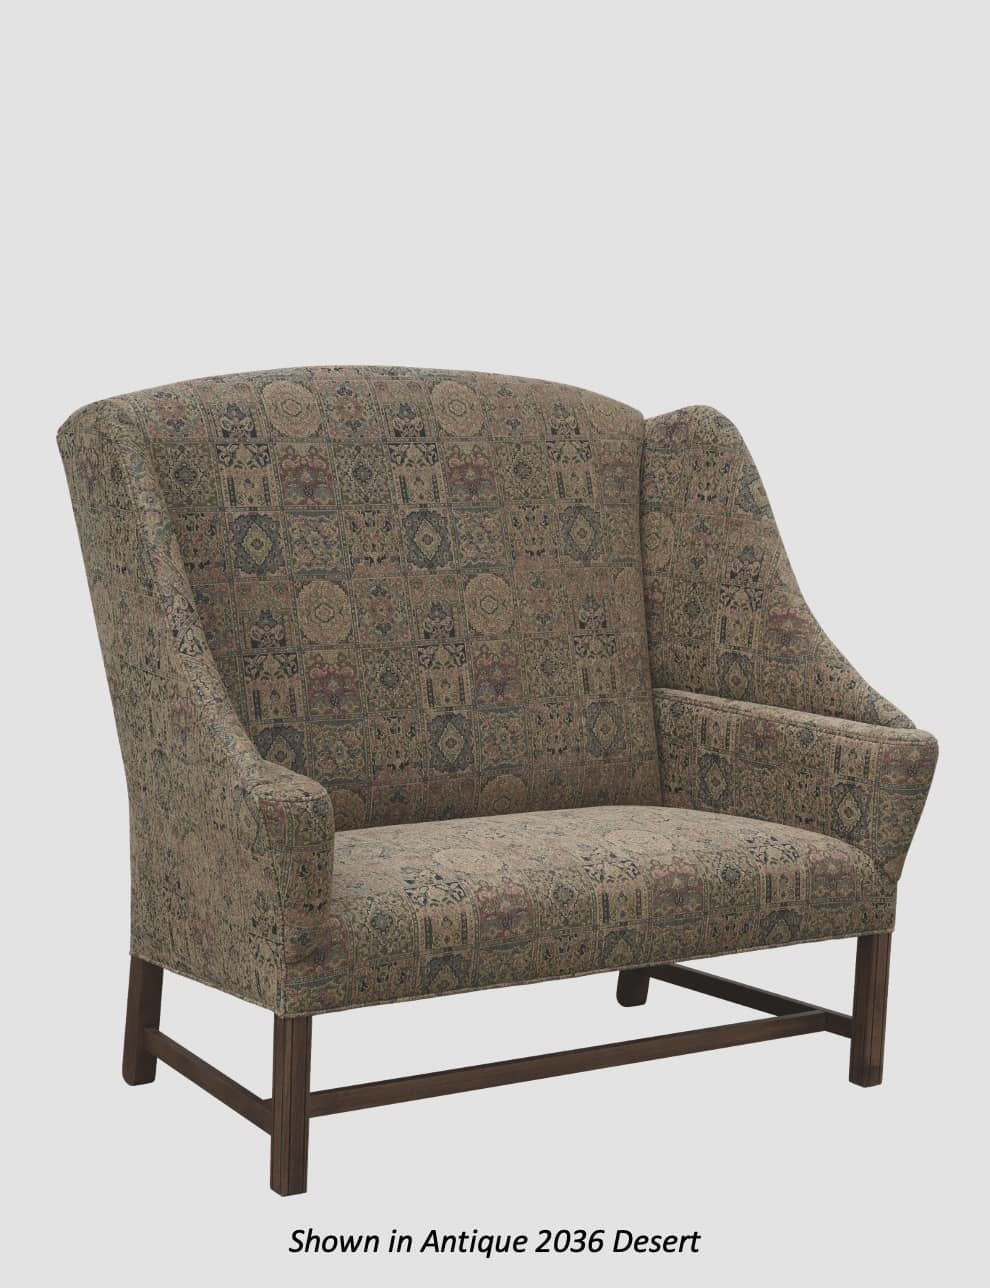 Town & Country Furnishings Millers Creek Settle from the American Country Collection